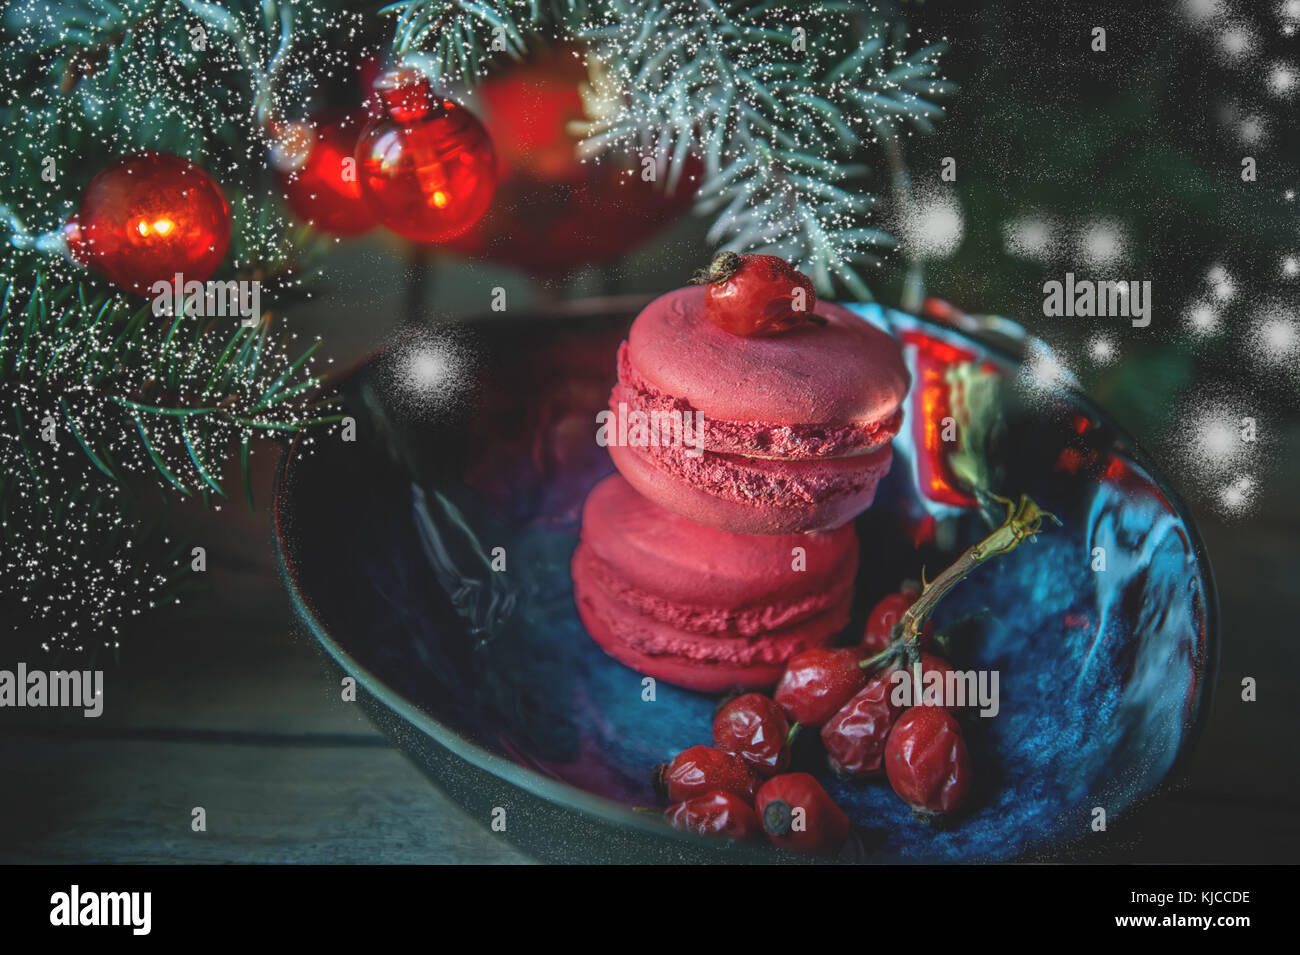 Fresh red macaron with berries of wild rose on the Christmas tree branches tables. Snow. Copy spaces. The horizontal - Stock Image